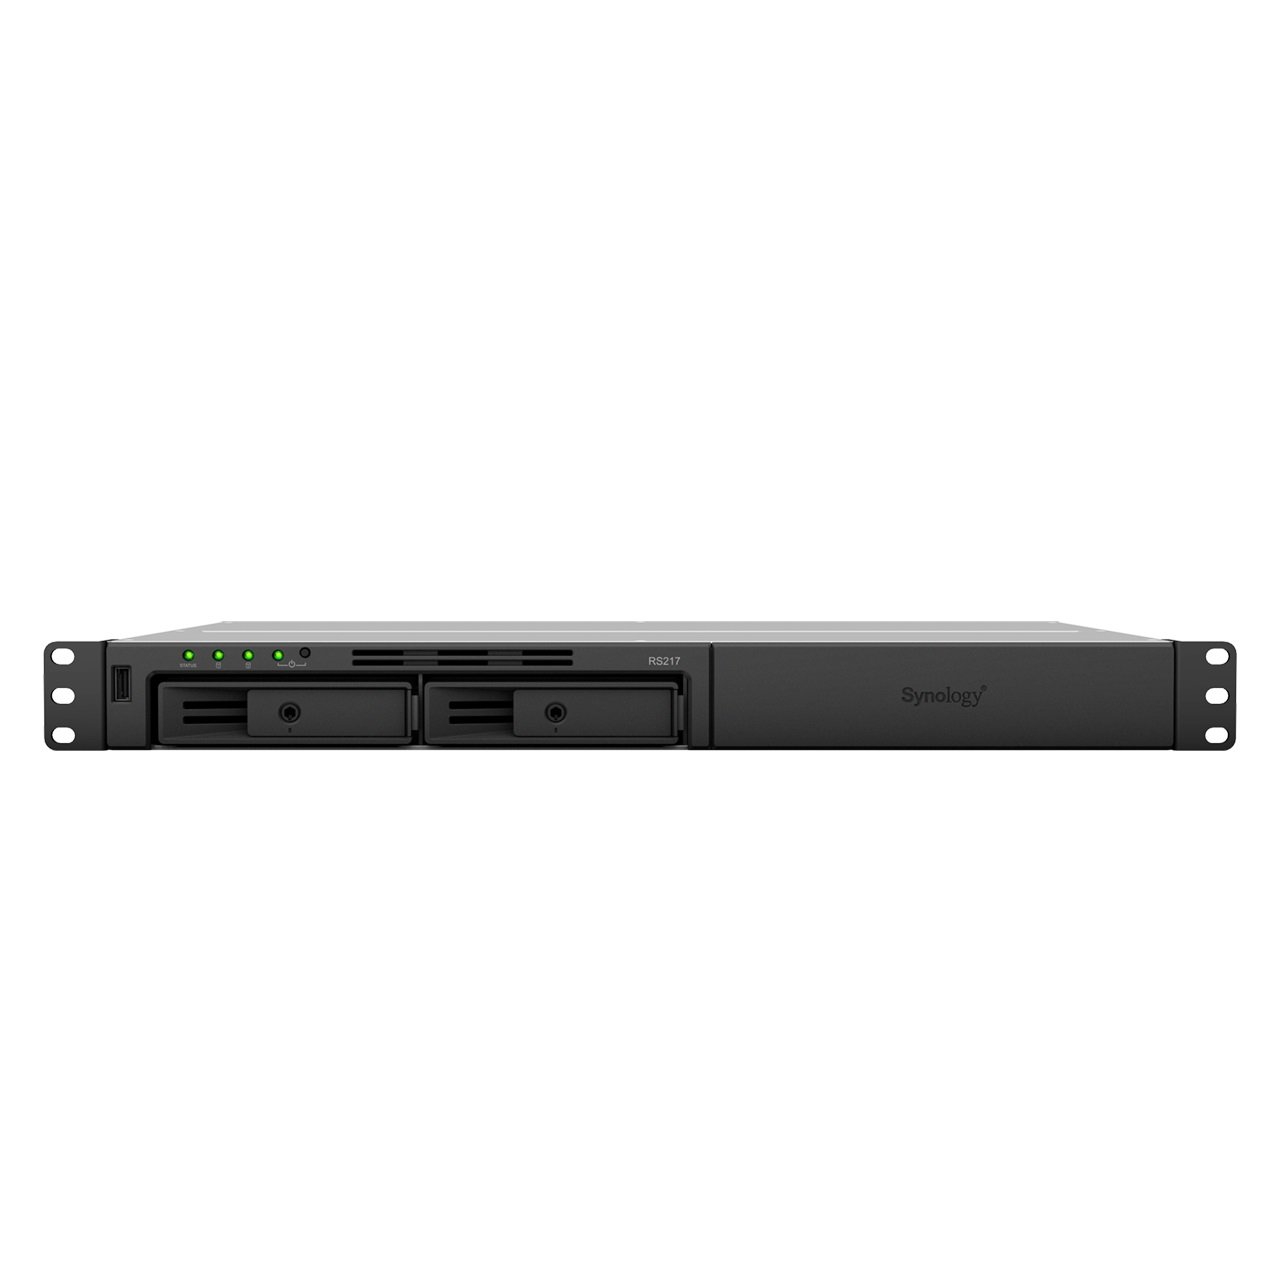 Synology 2bay NAS RackStation RS217 (Diskless) by Synology